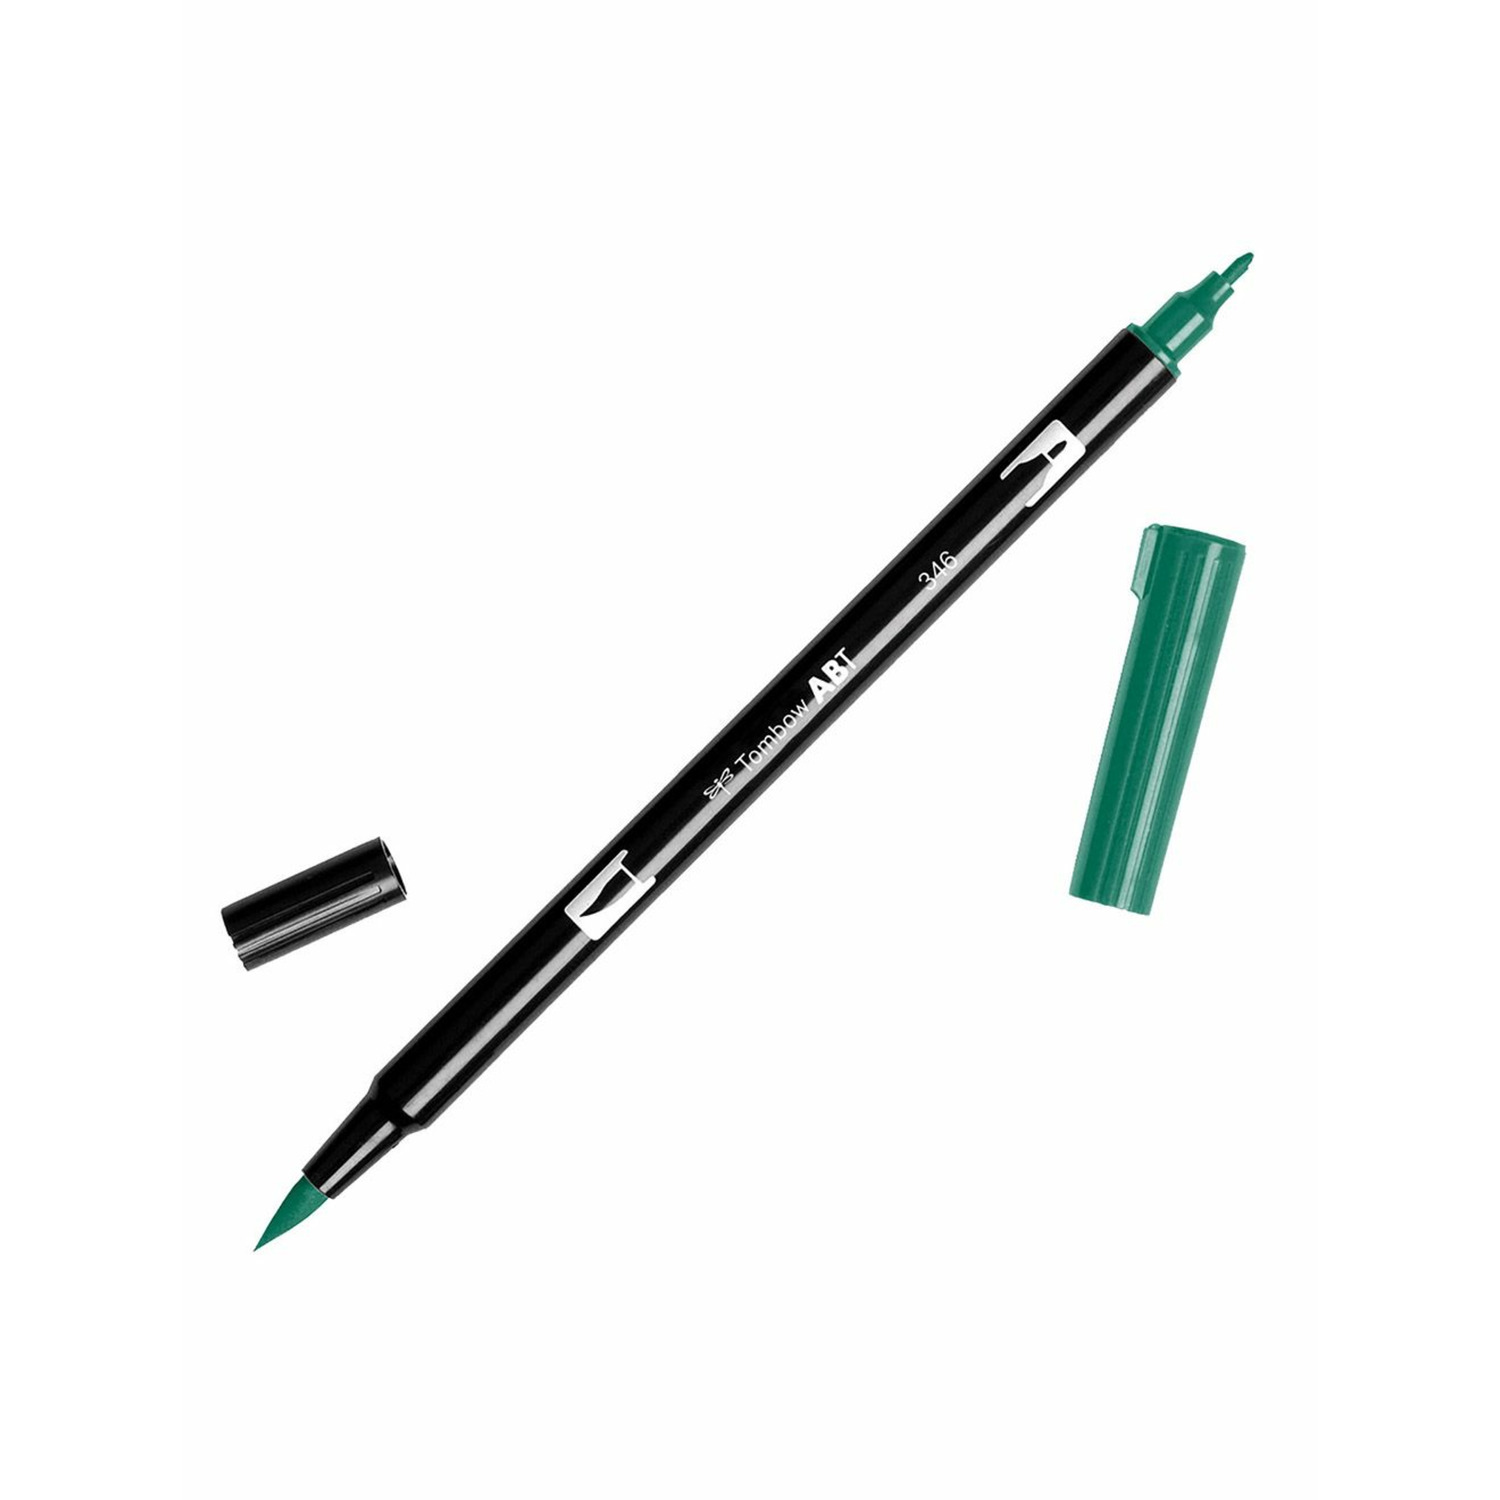 tombow-abt-brush-pen-sea-green-large-1_big_image